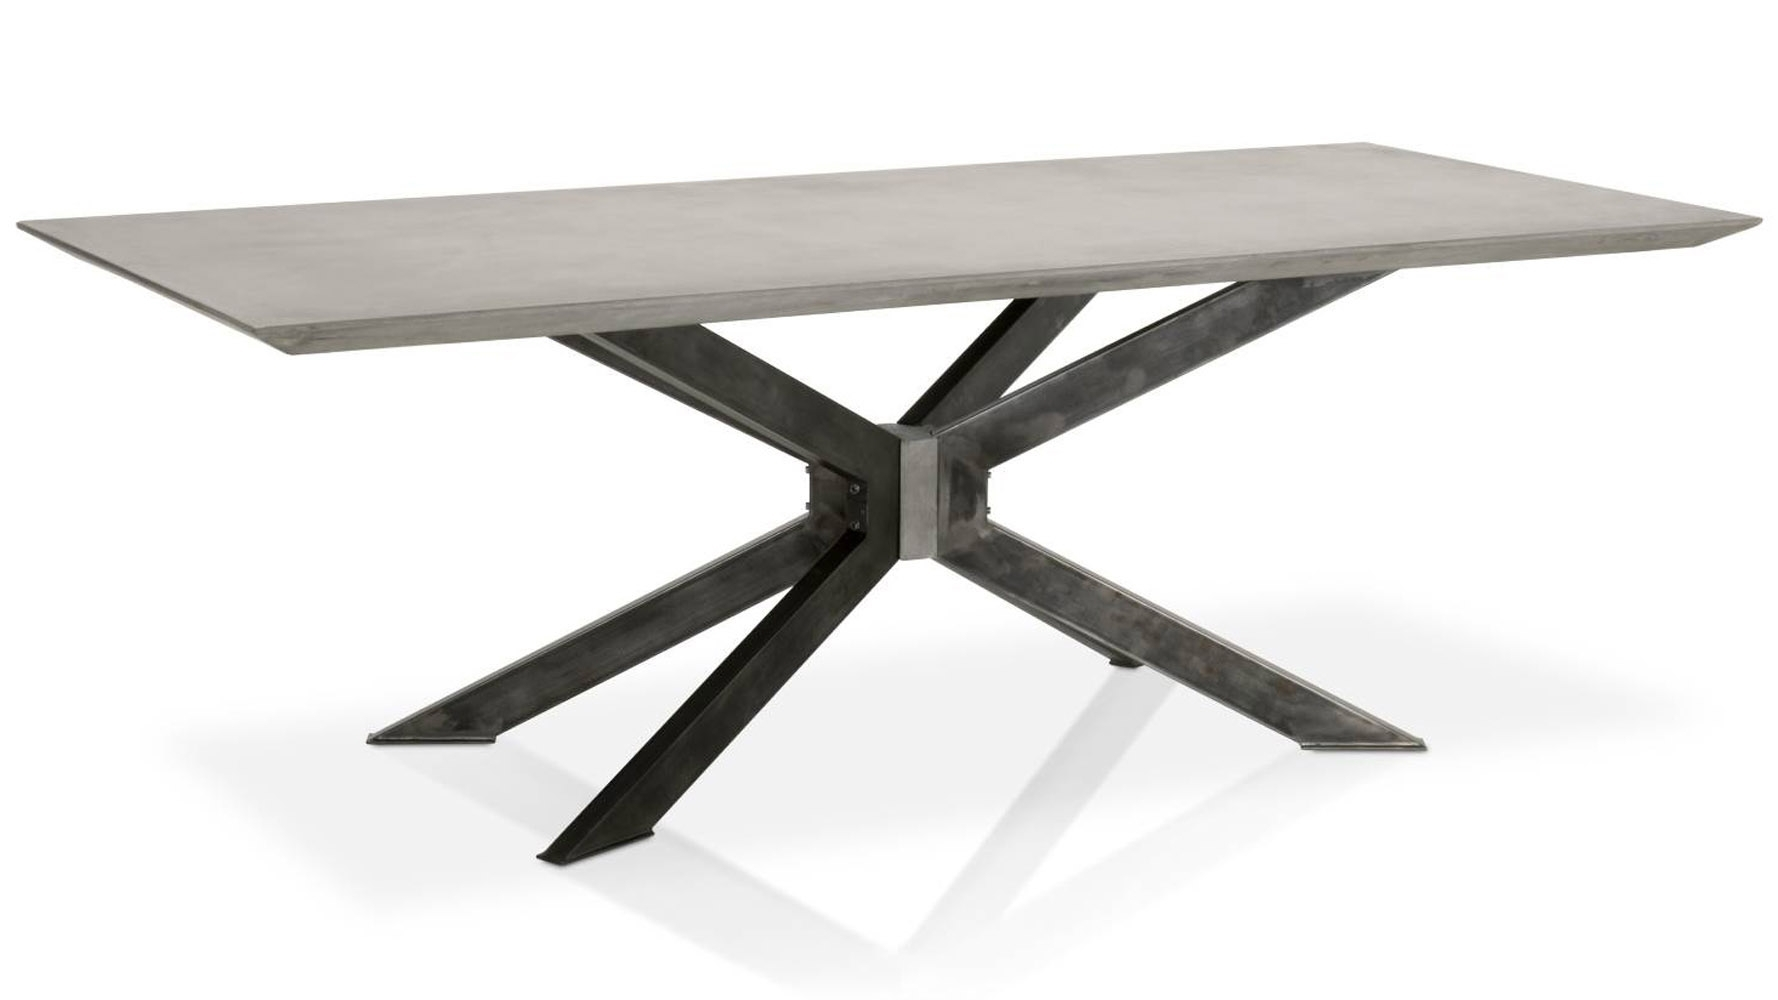 Beton 87 Inch Dining Table | Zuri Furniture Inside Most Up To Date 87 Inch Dining Tables (View 20 of 20)